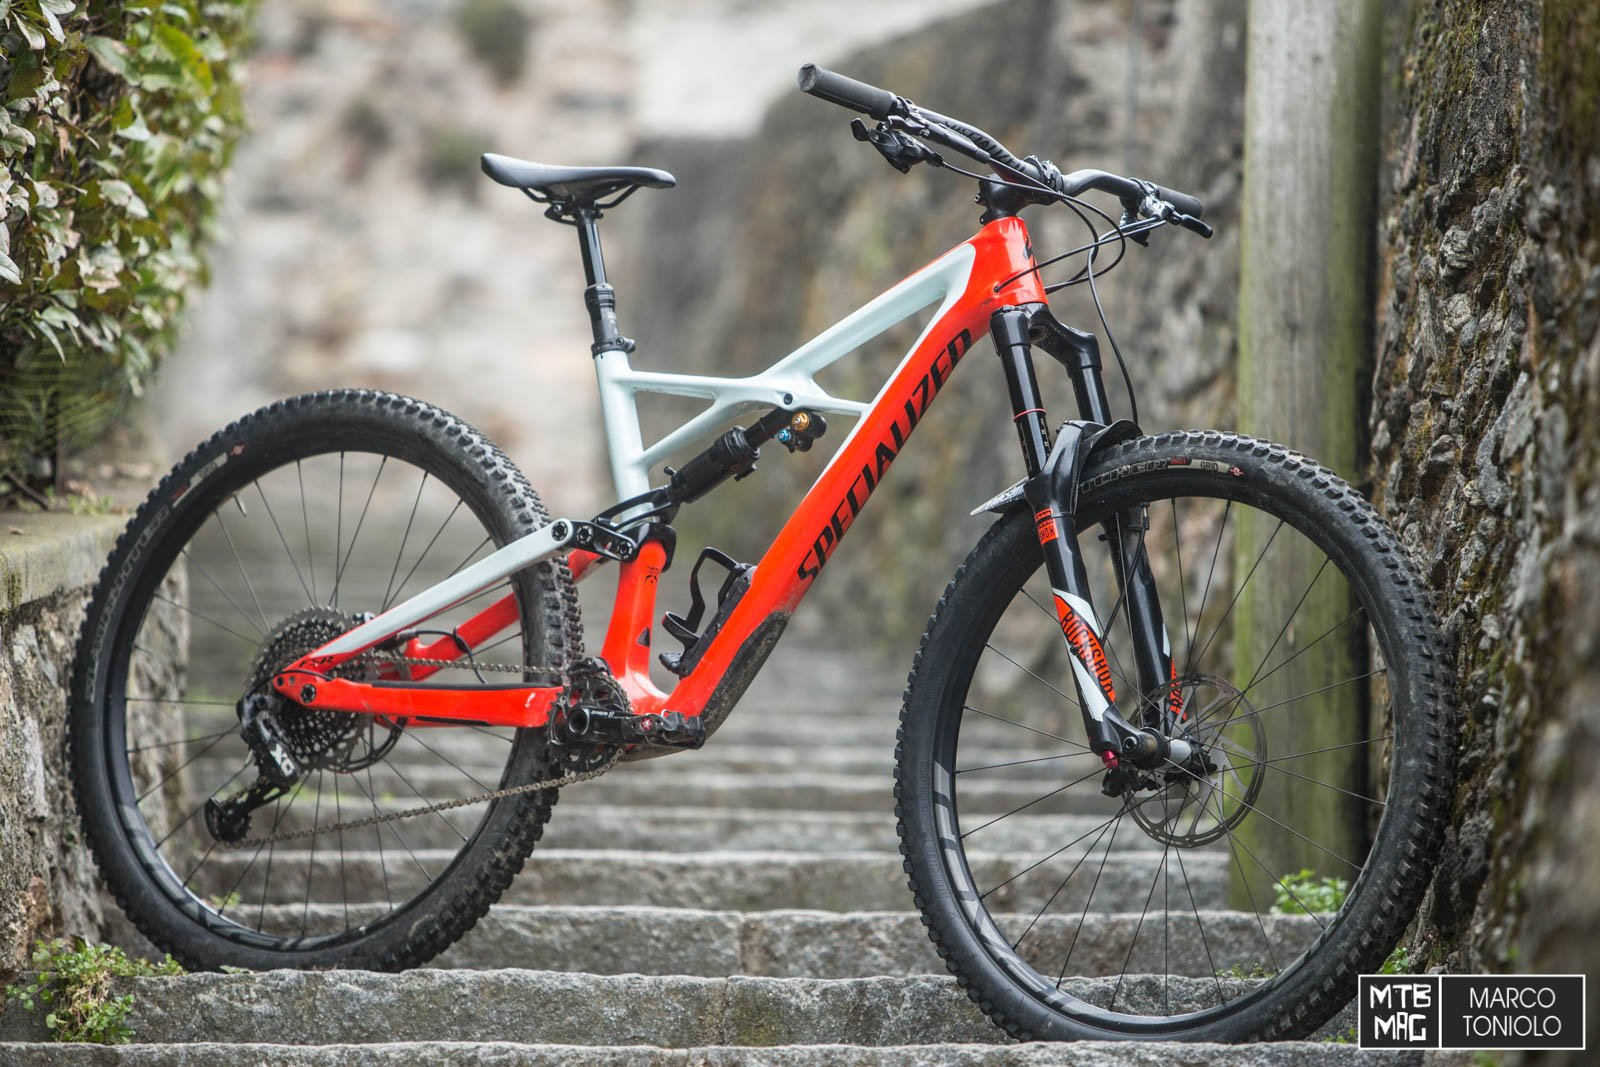 Tested] Specialized Enduro FSR Pro Carbon 29 | MTB-MAG.COM